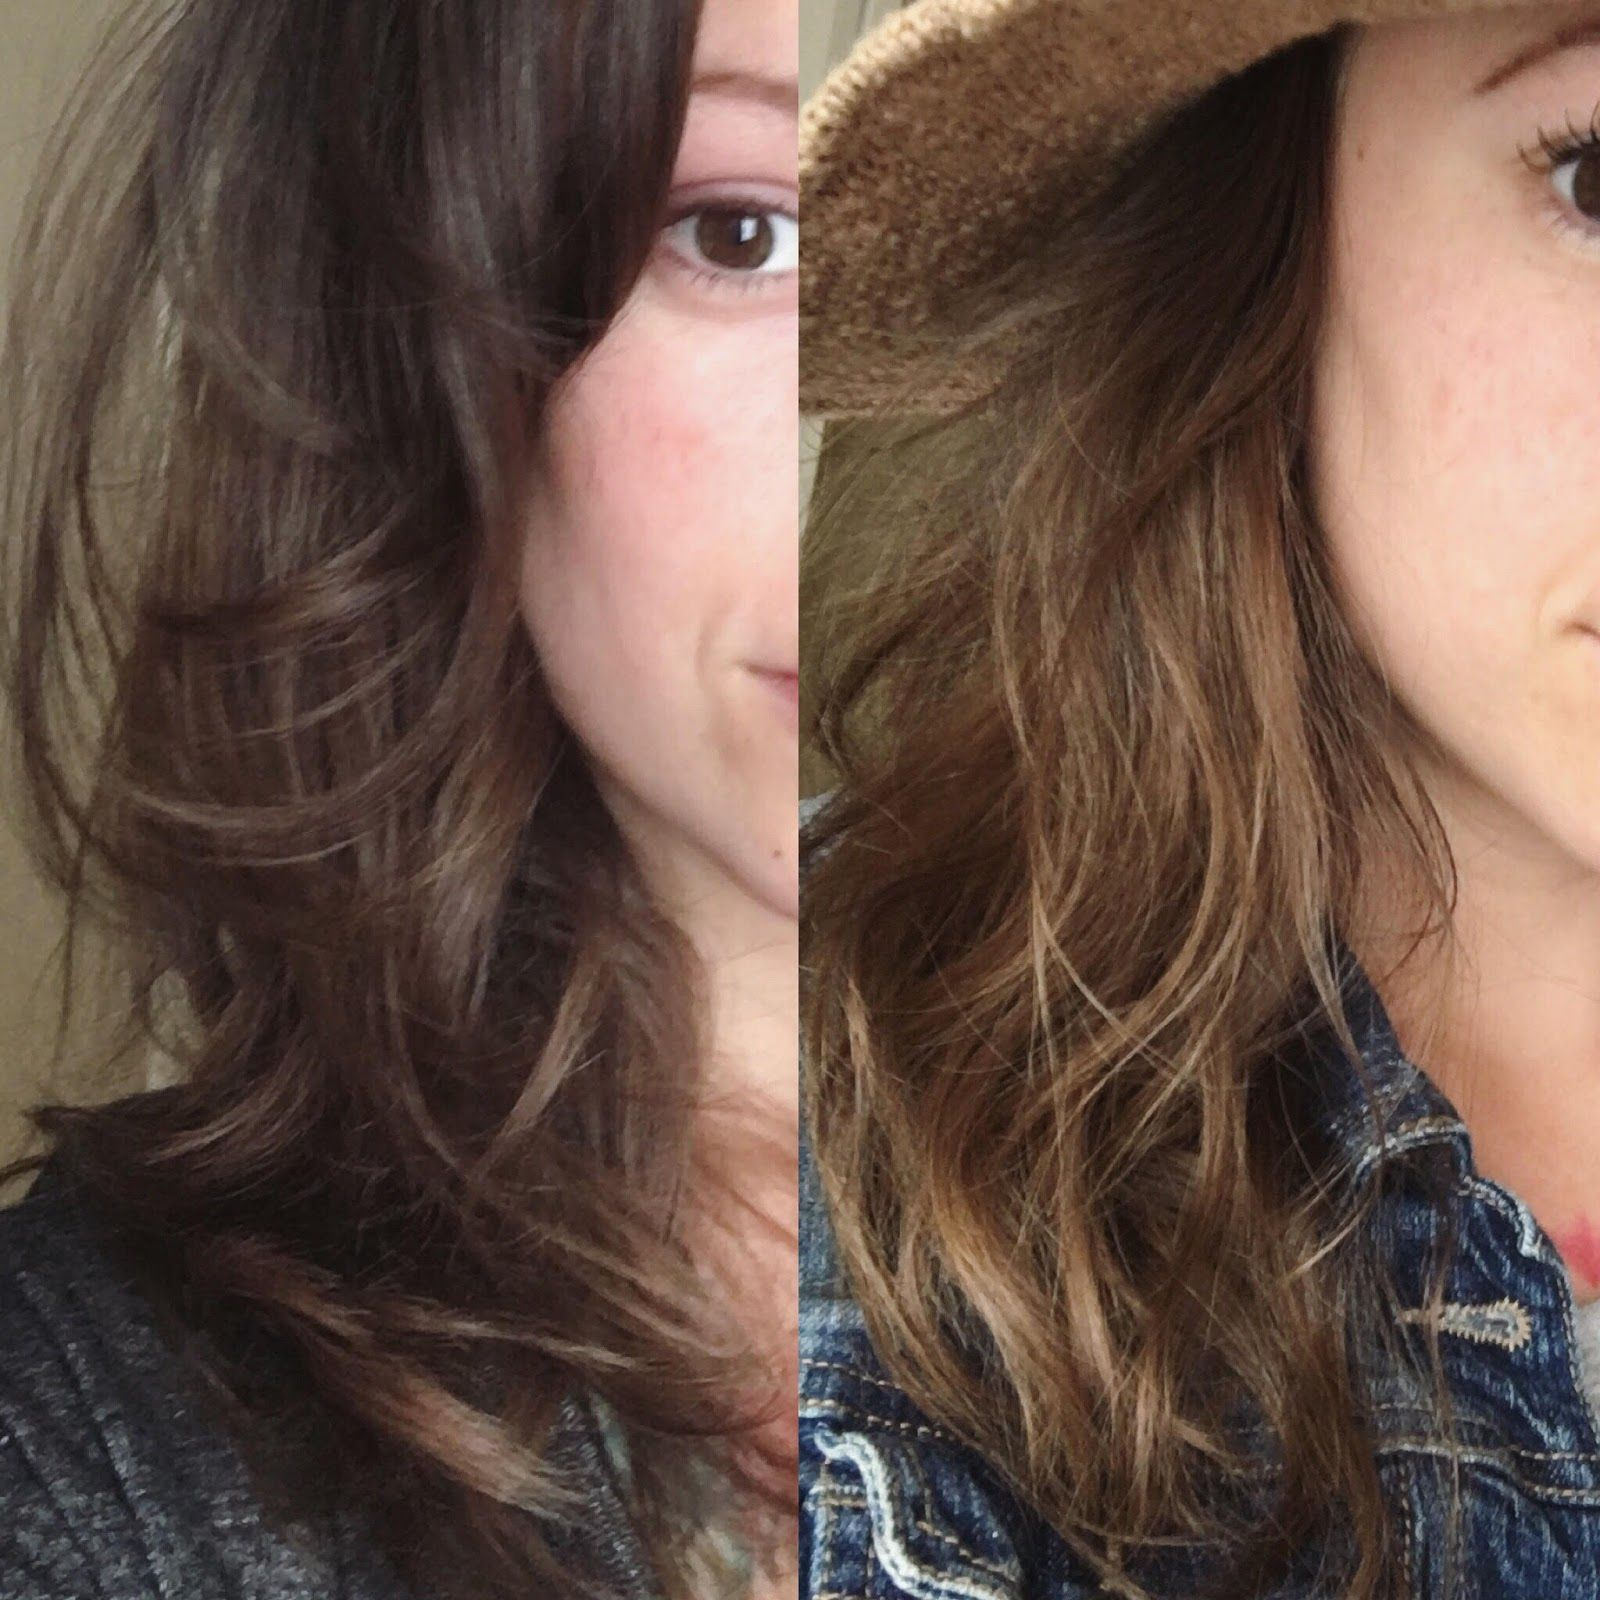 Experiment Chamomile To Lighten Hair How To Lighten Hair Chamomile Hair Lighten Hair Naturally